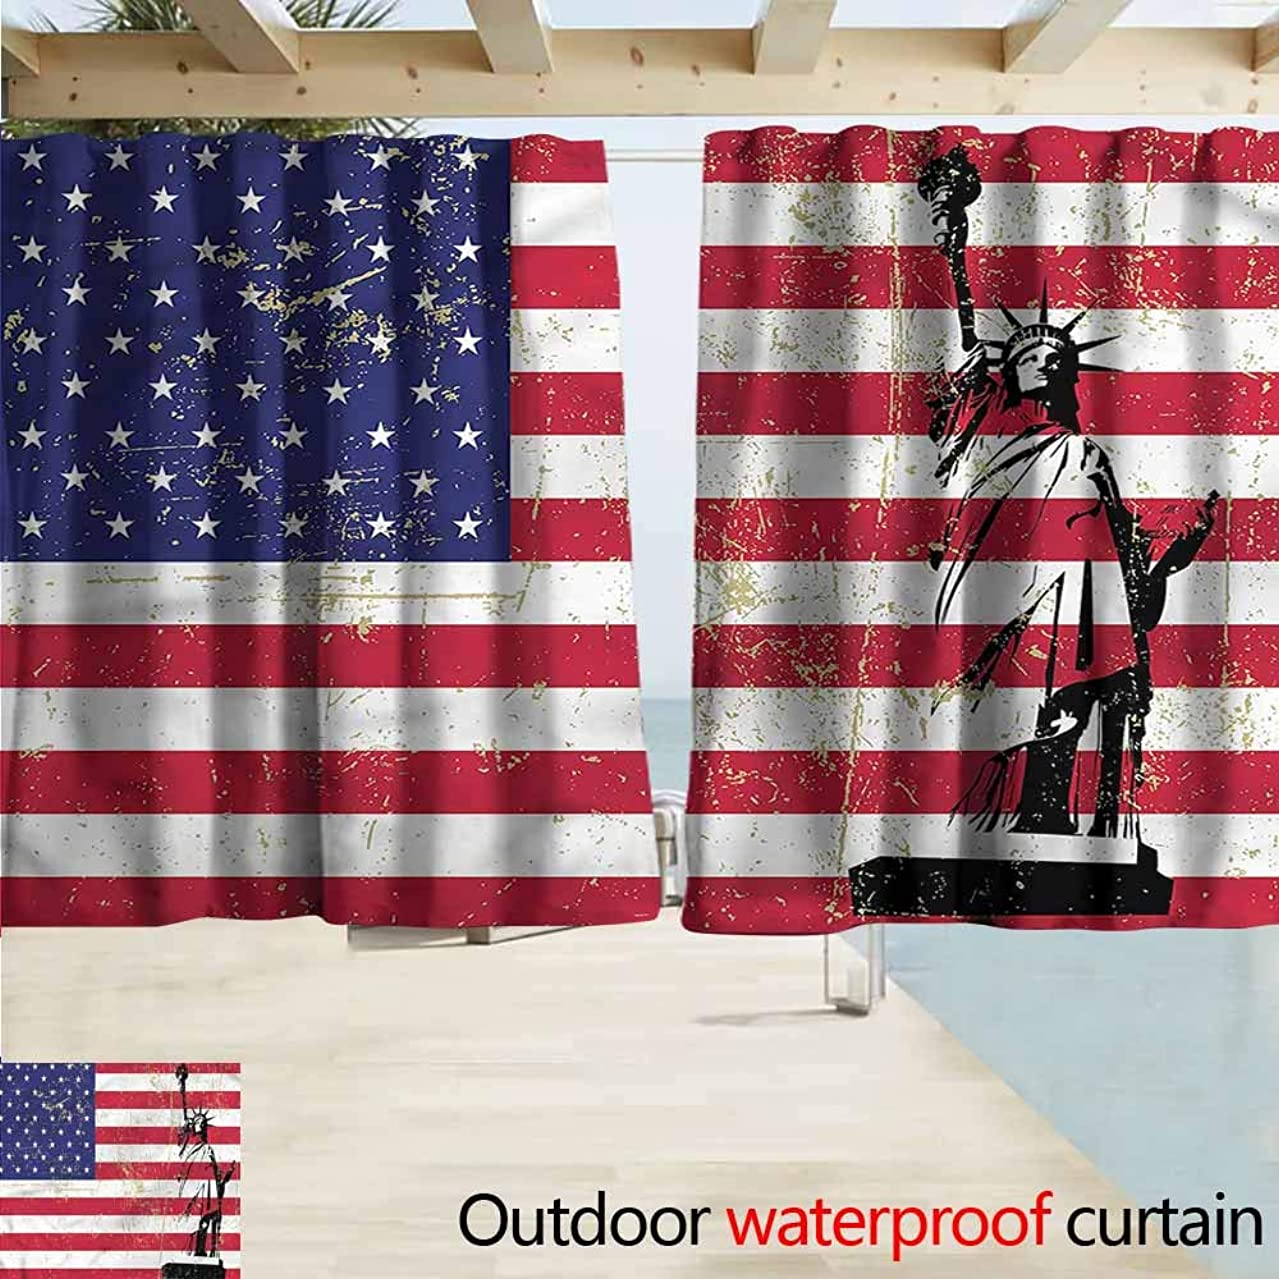 MaryMunger Outdoor Blackout Curtains New York Statue of Liberty USA Rod Pocket Energy Efficient Thermal Insulated W63x63L Inches